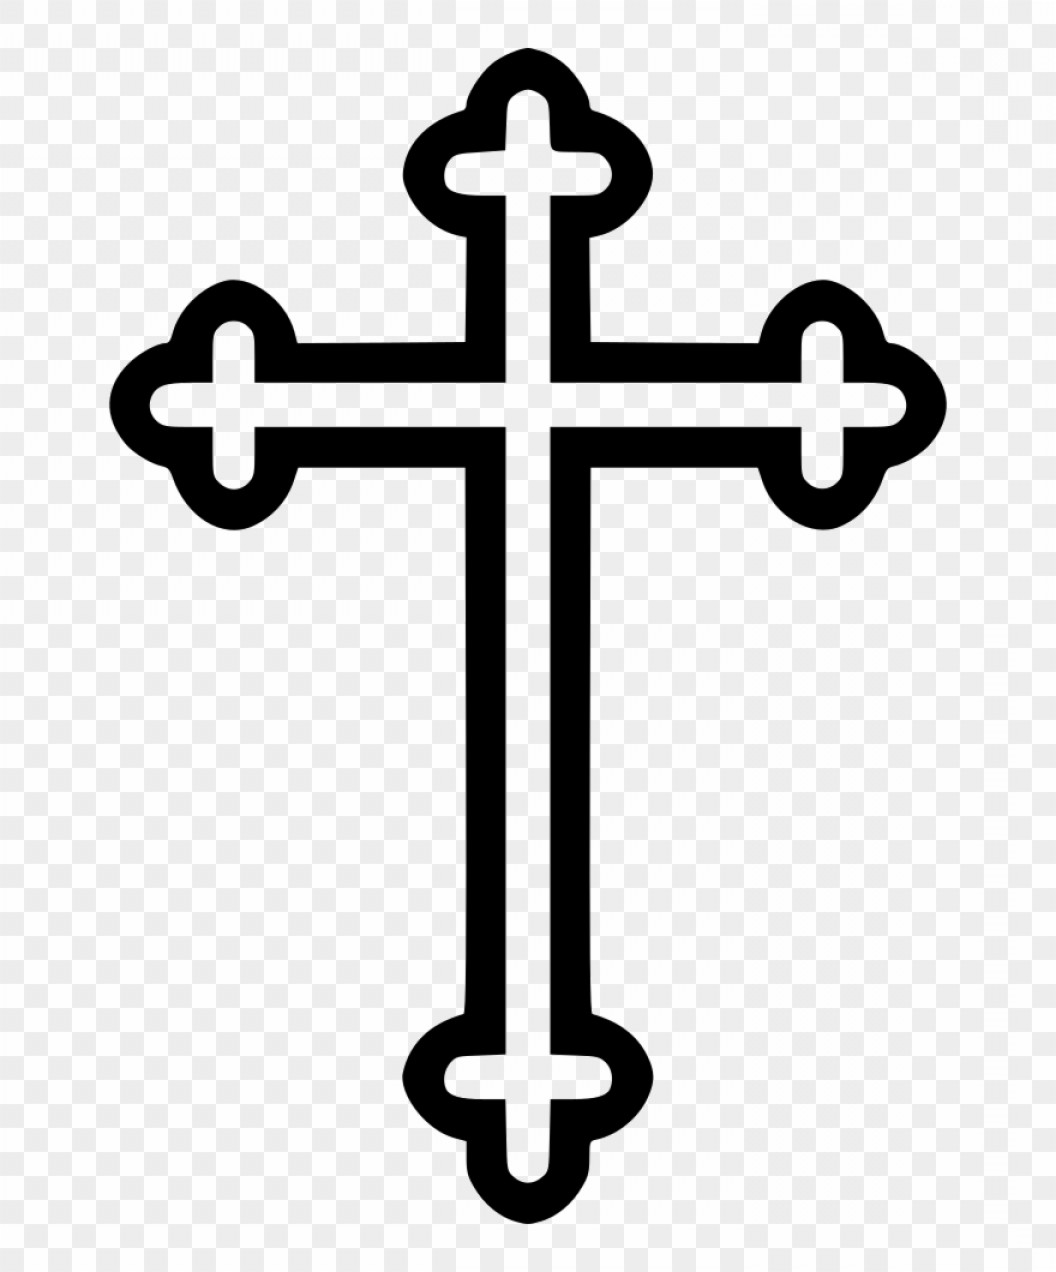 Cool Cross Vector Clip Art: Irhmitcross Religion Symbol Byzantine Catholic Cross Vector Clipart